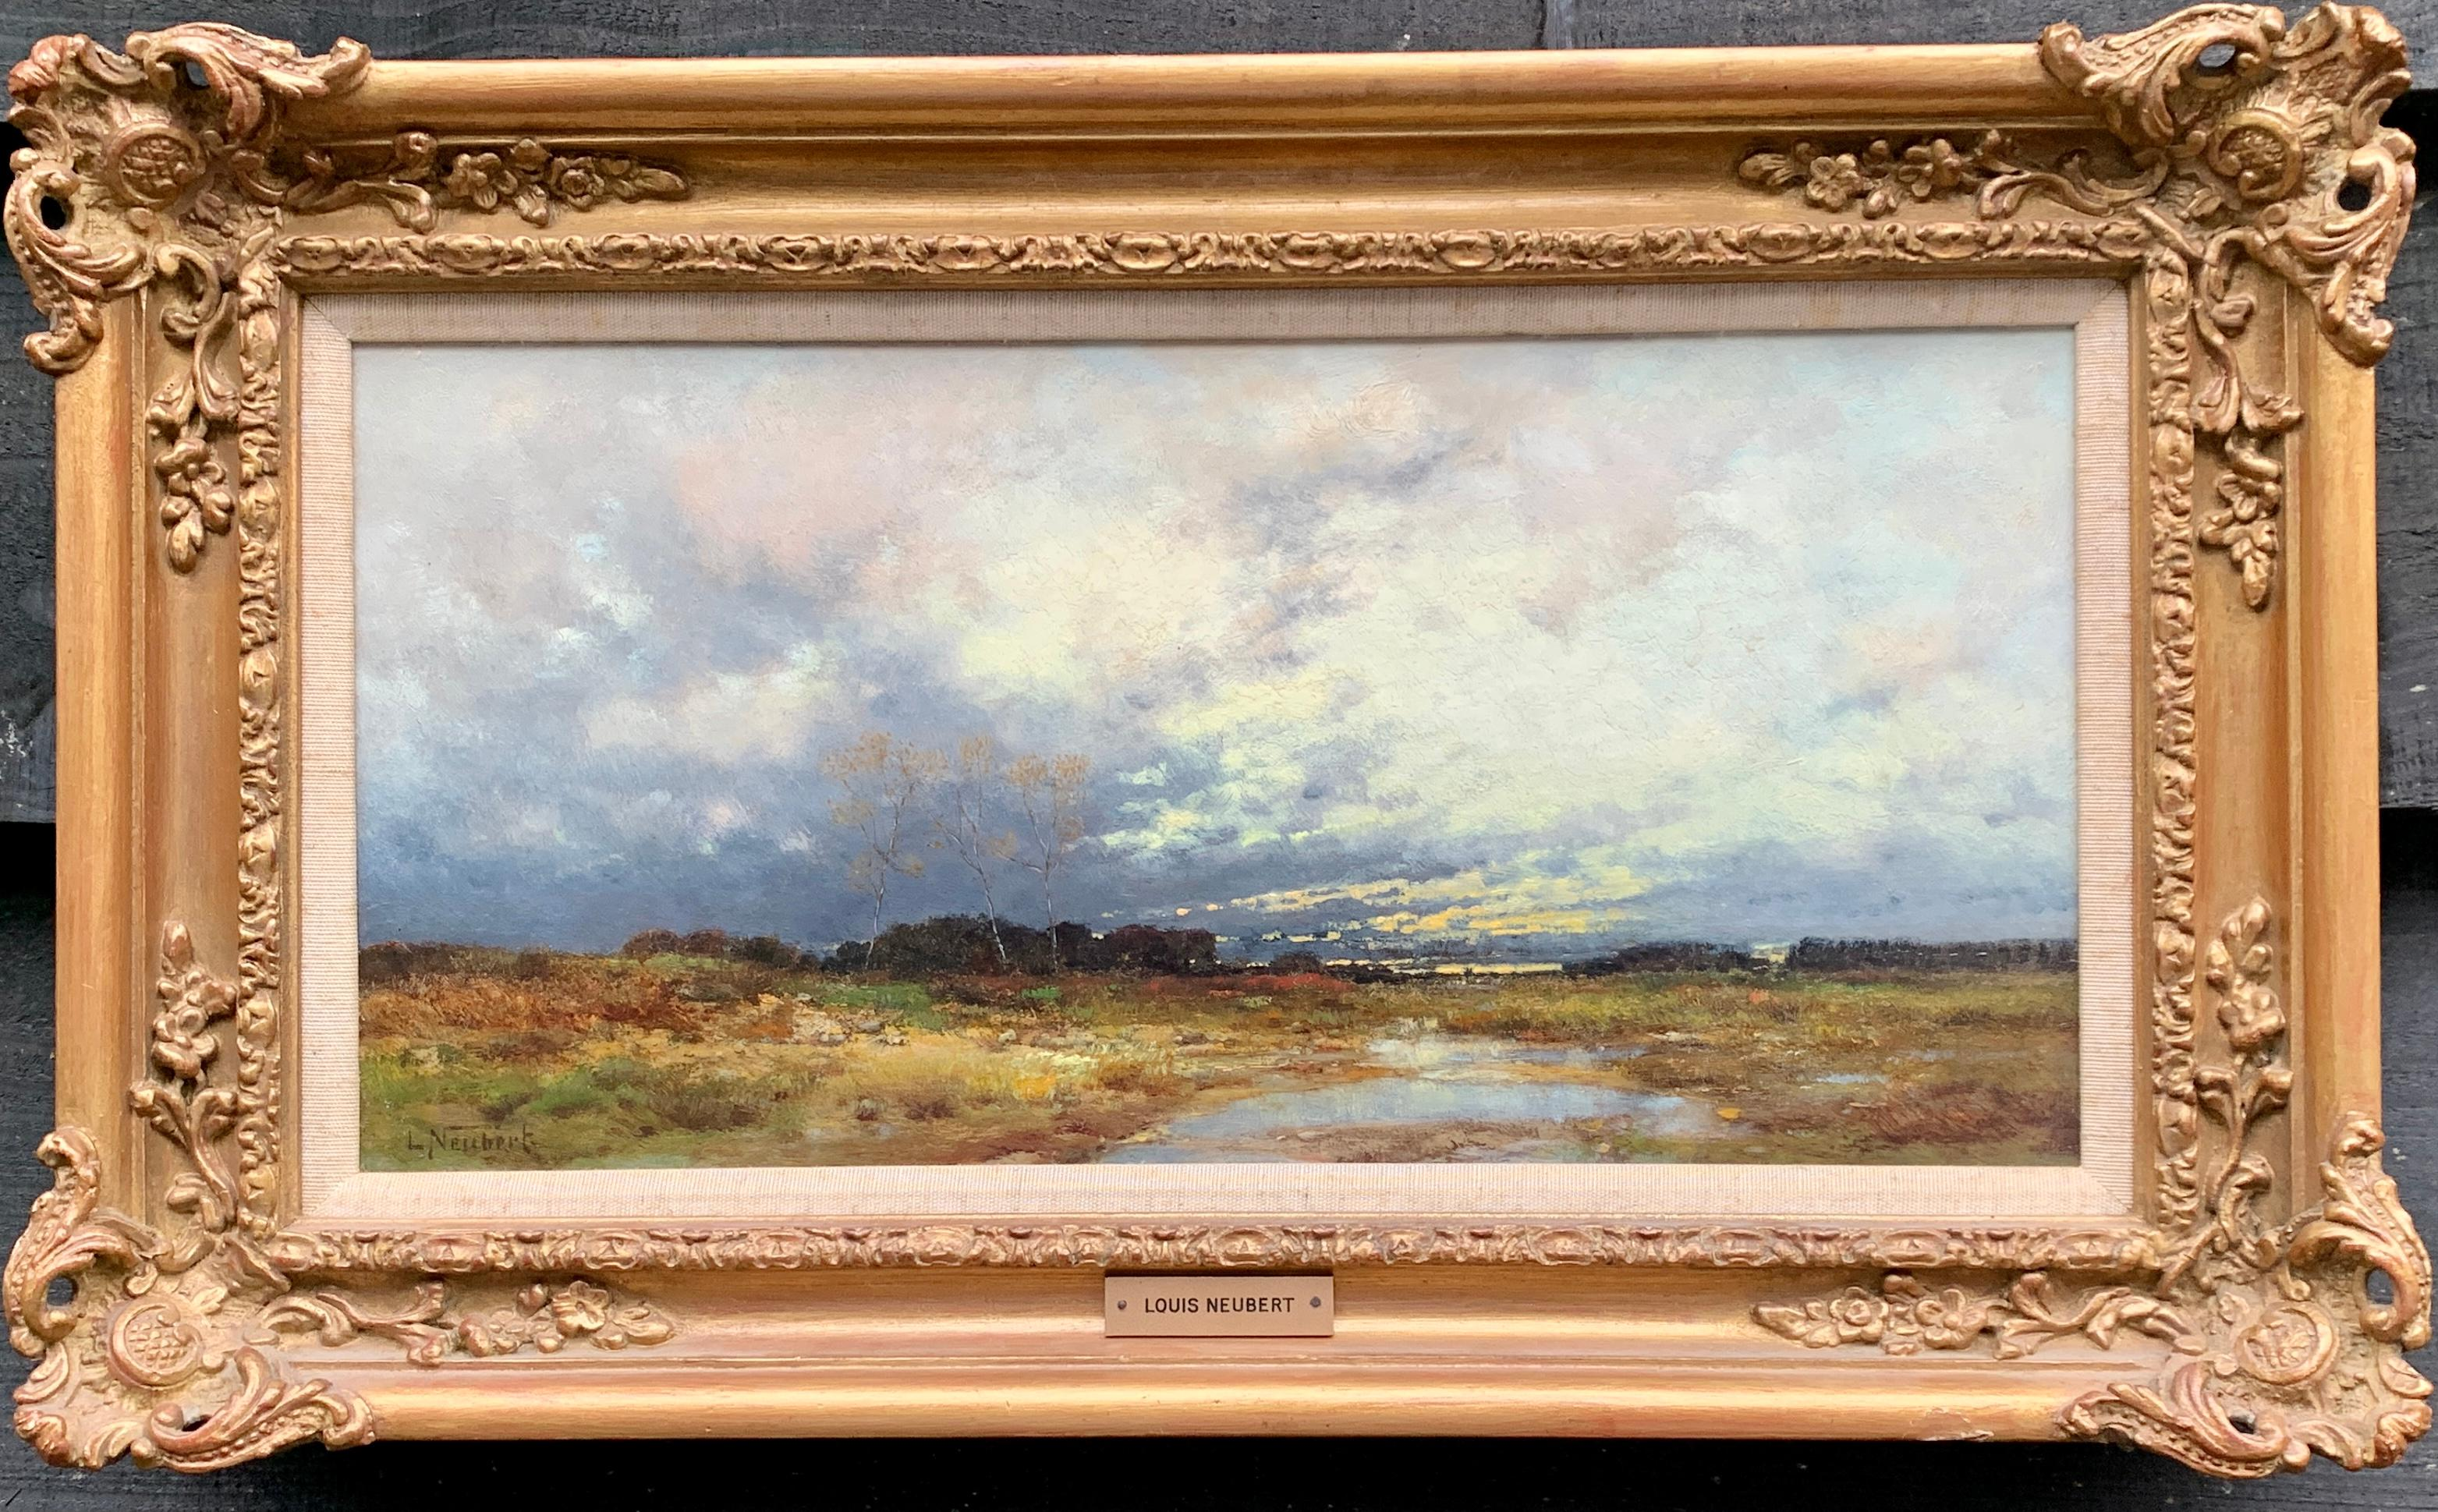 19th century German/European landscape in oils with setting sun, trees and water